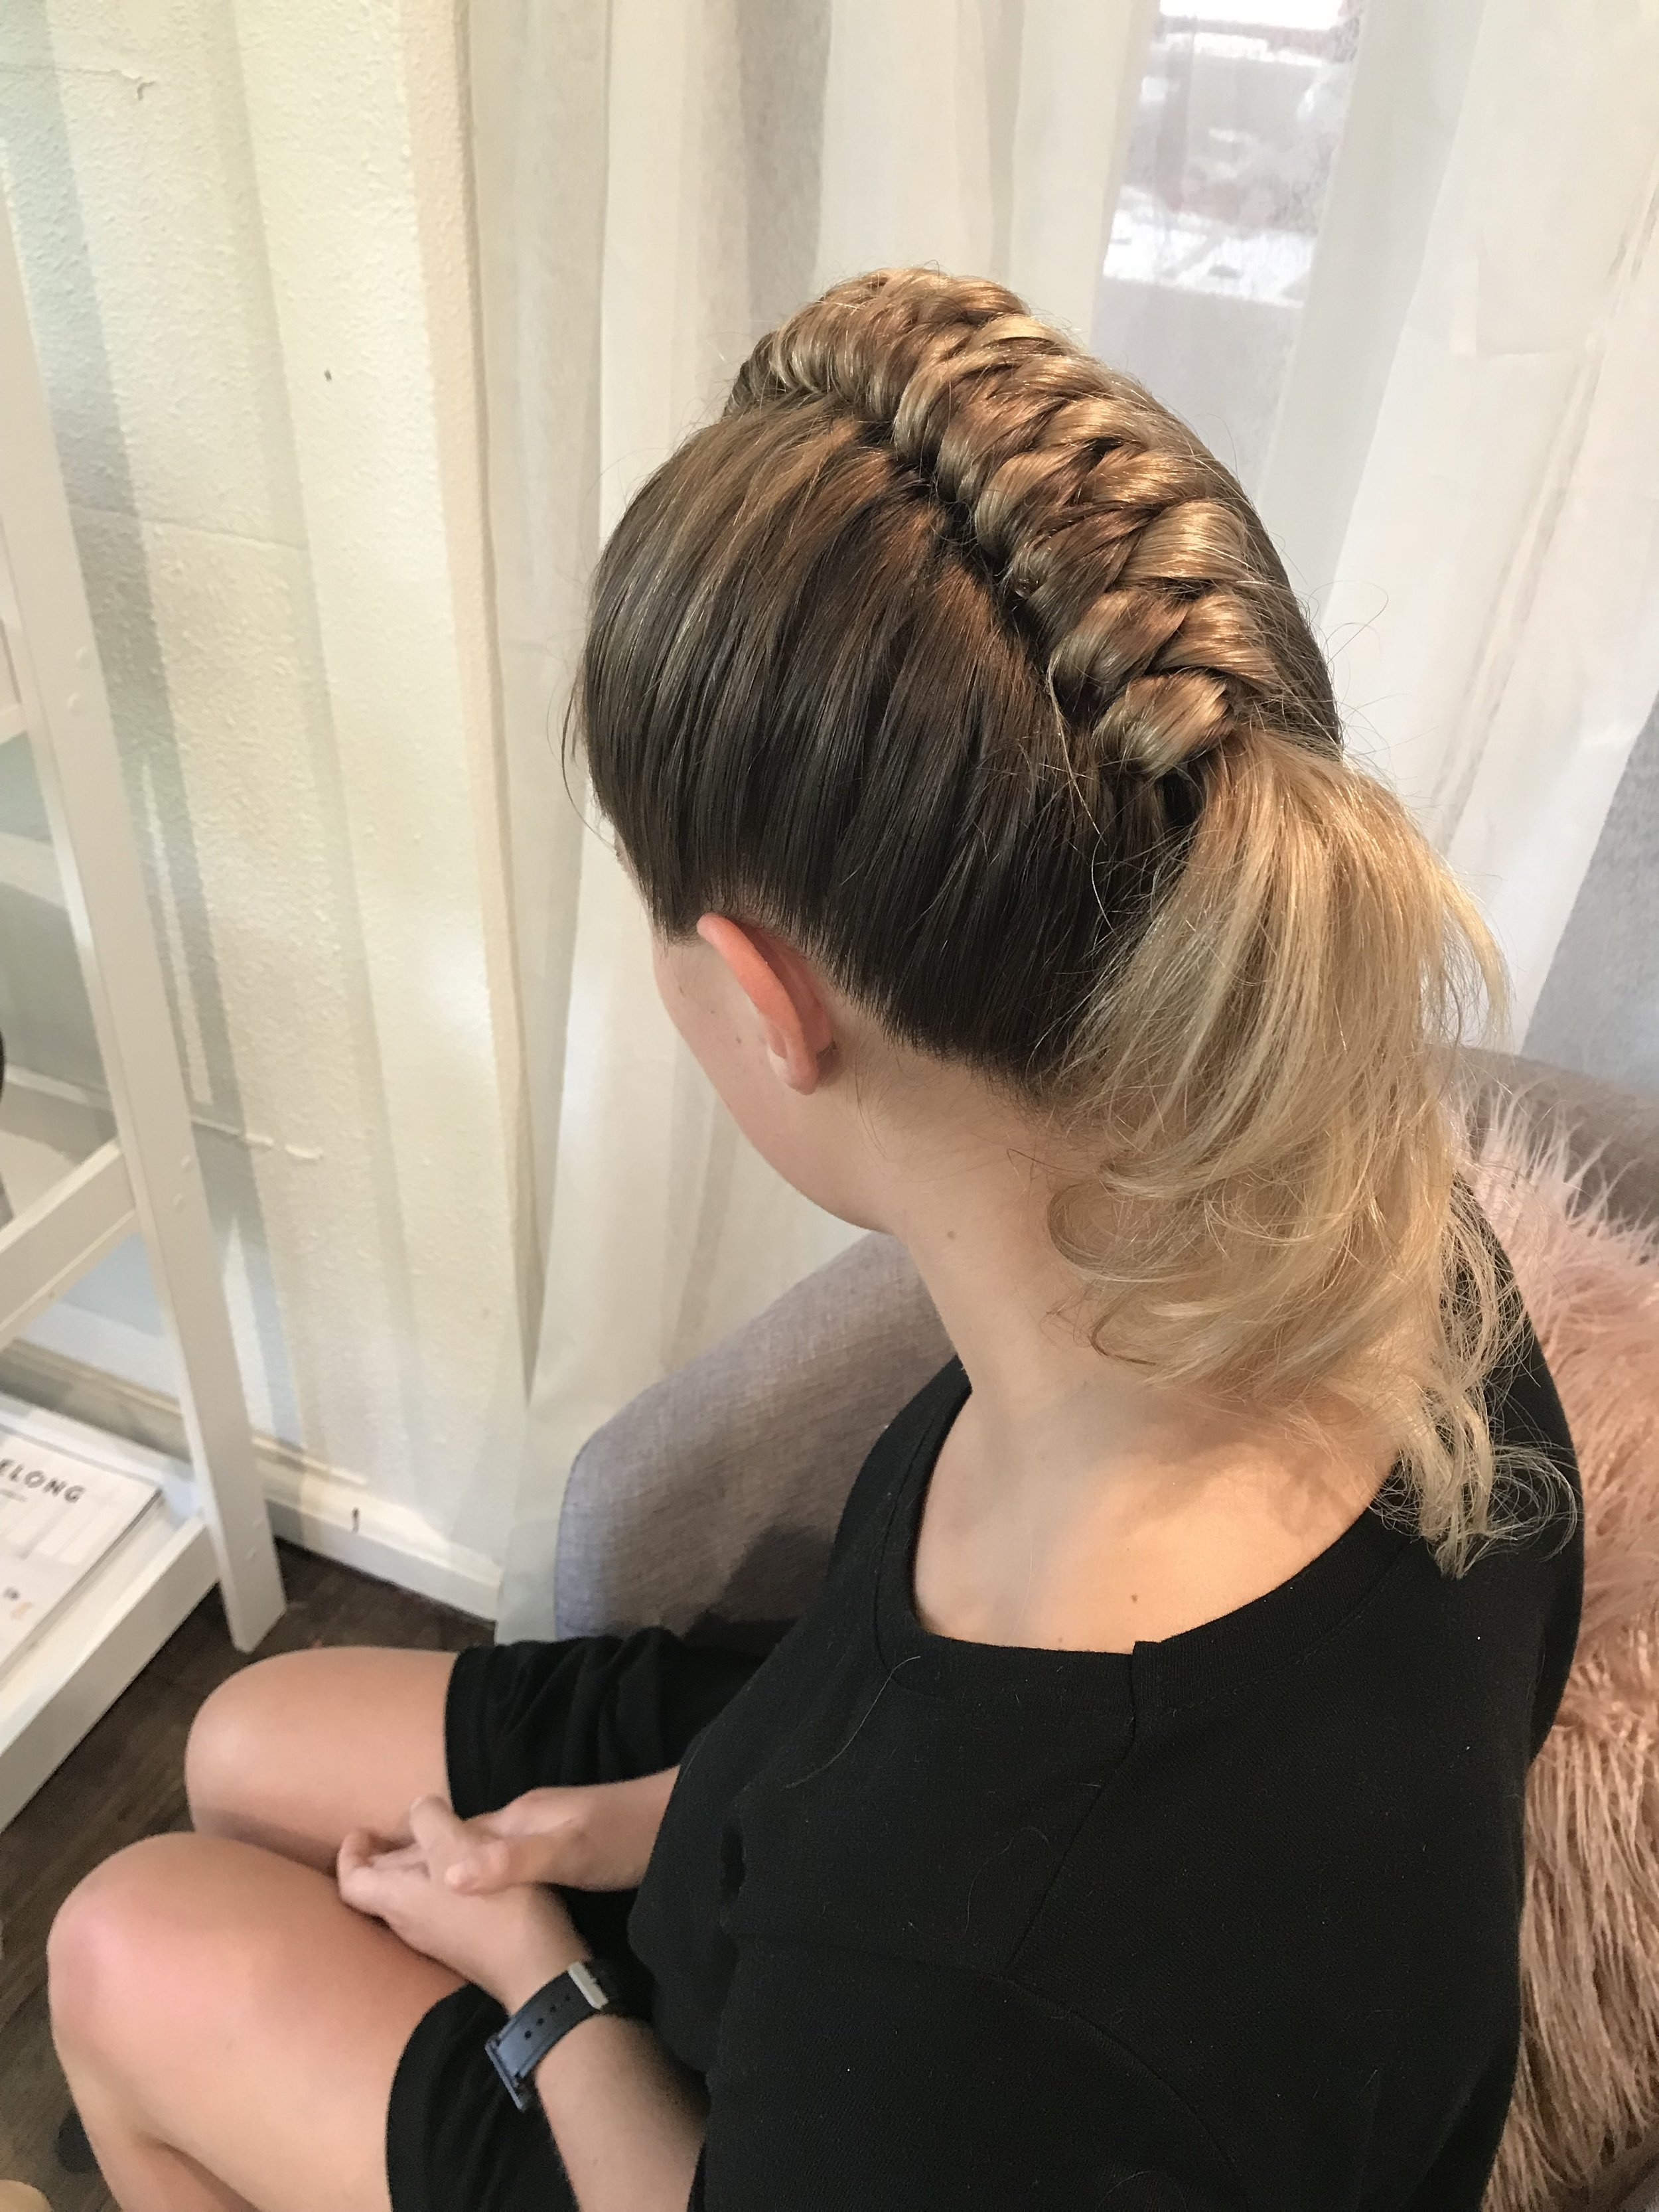 Hair Braiding Salon Australia Kellie Turner 42.jpg